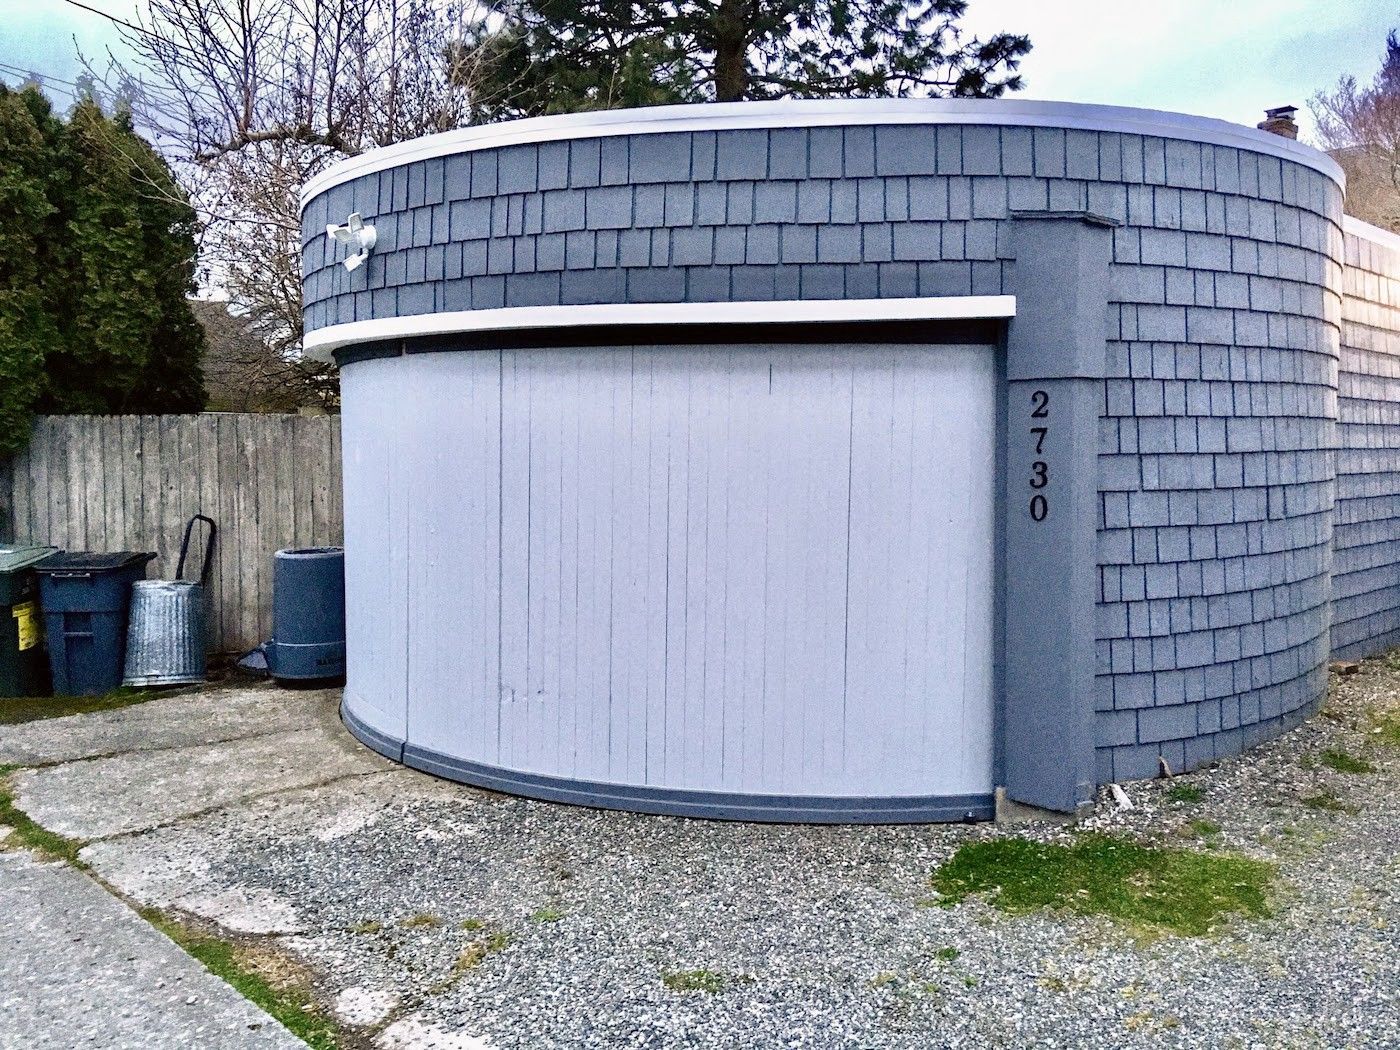 A round fronted, stand-alone garage with a curved rolling door and shingled sides facing an alley.